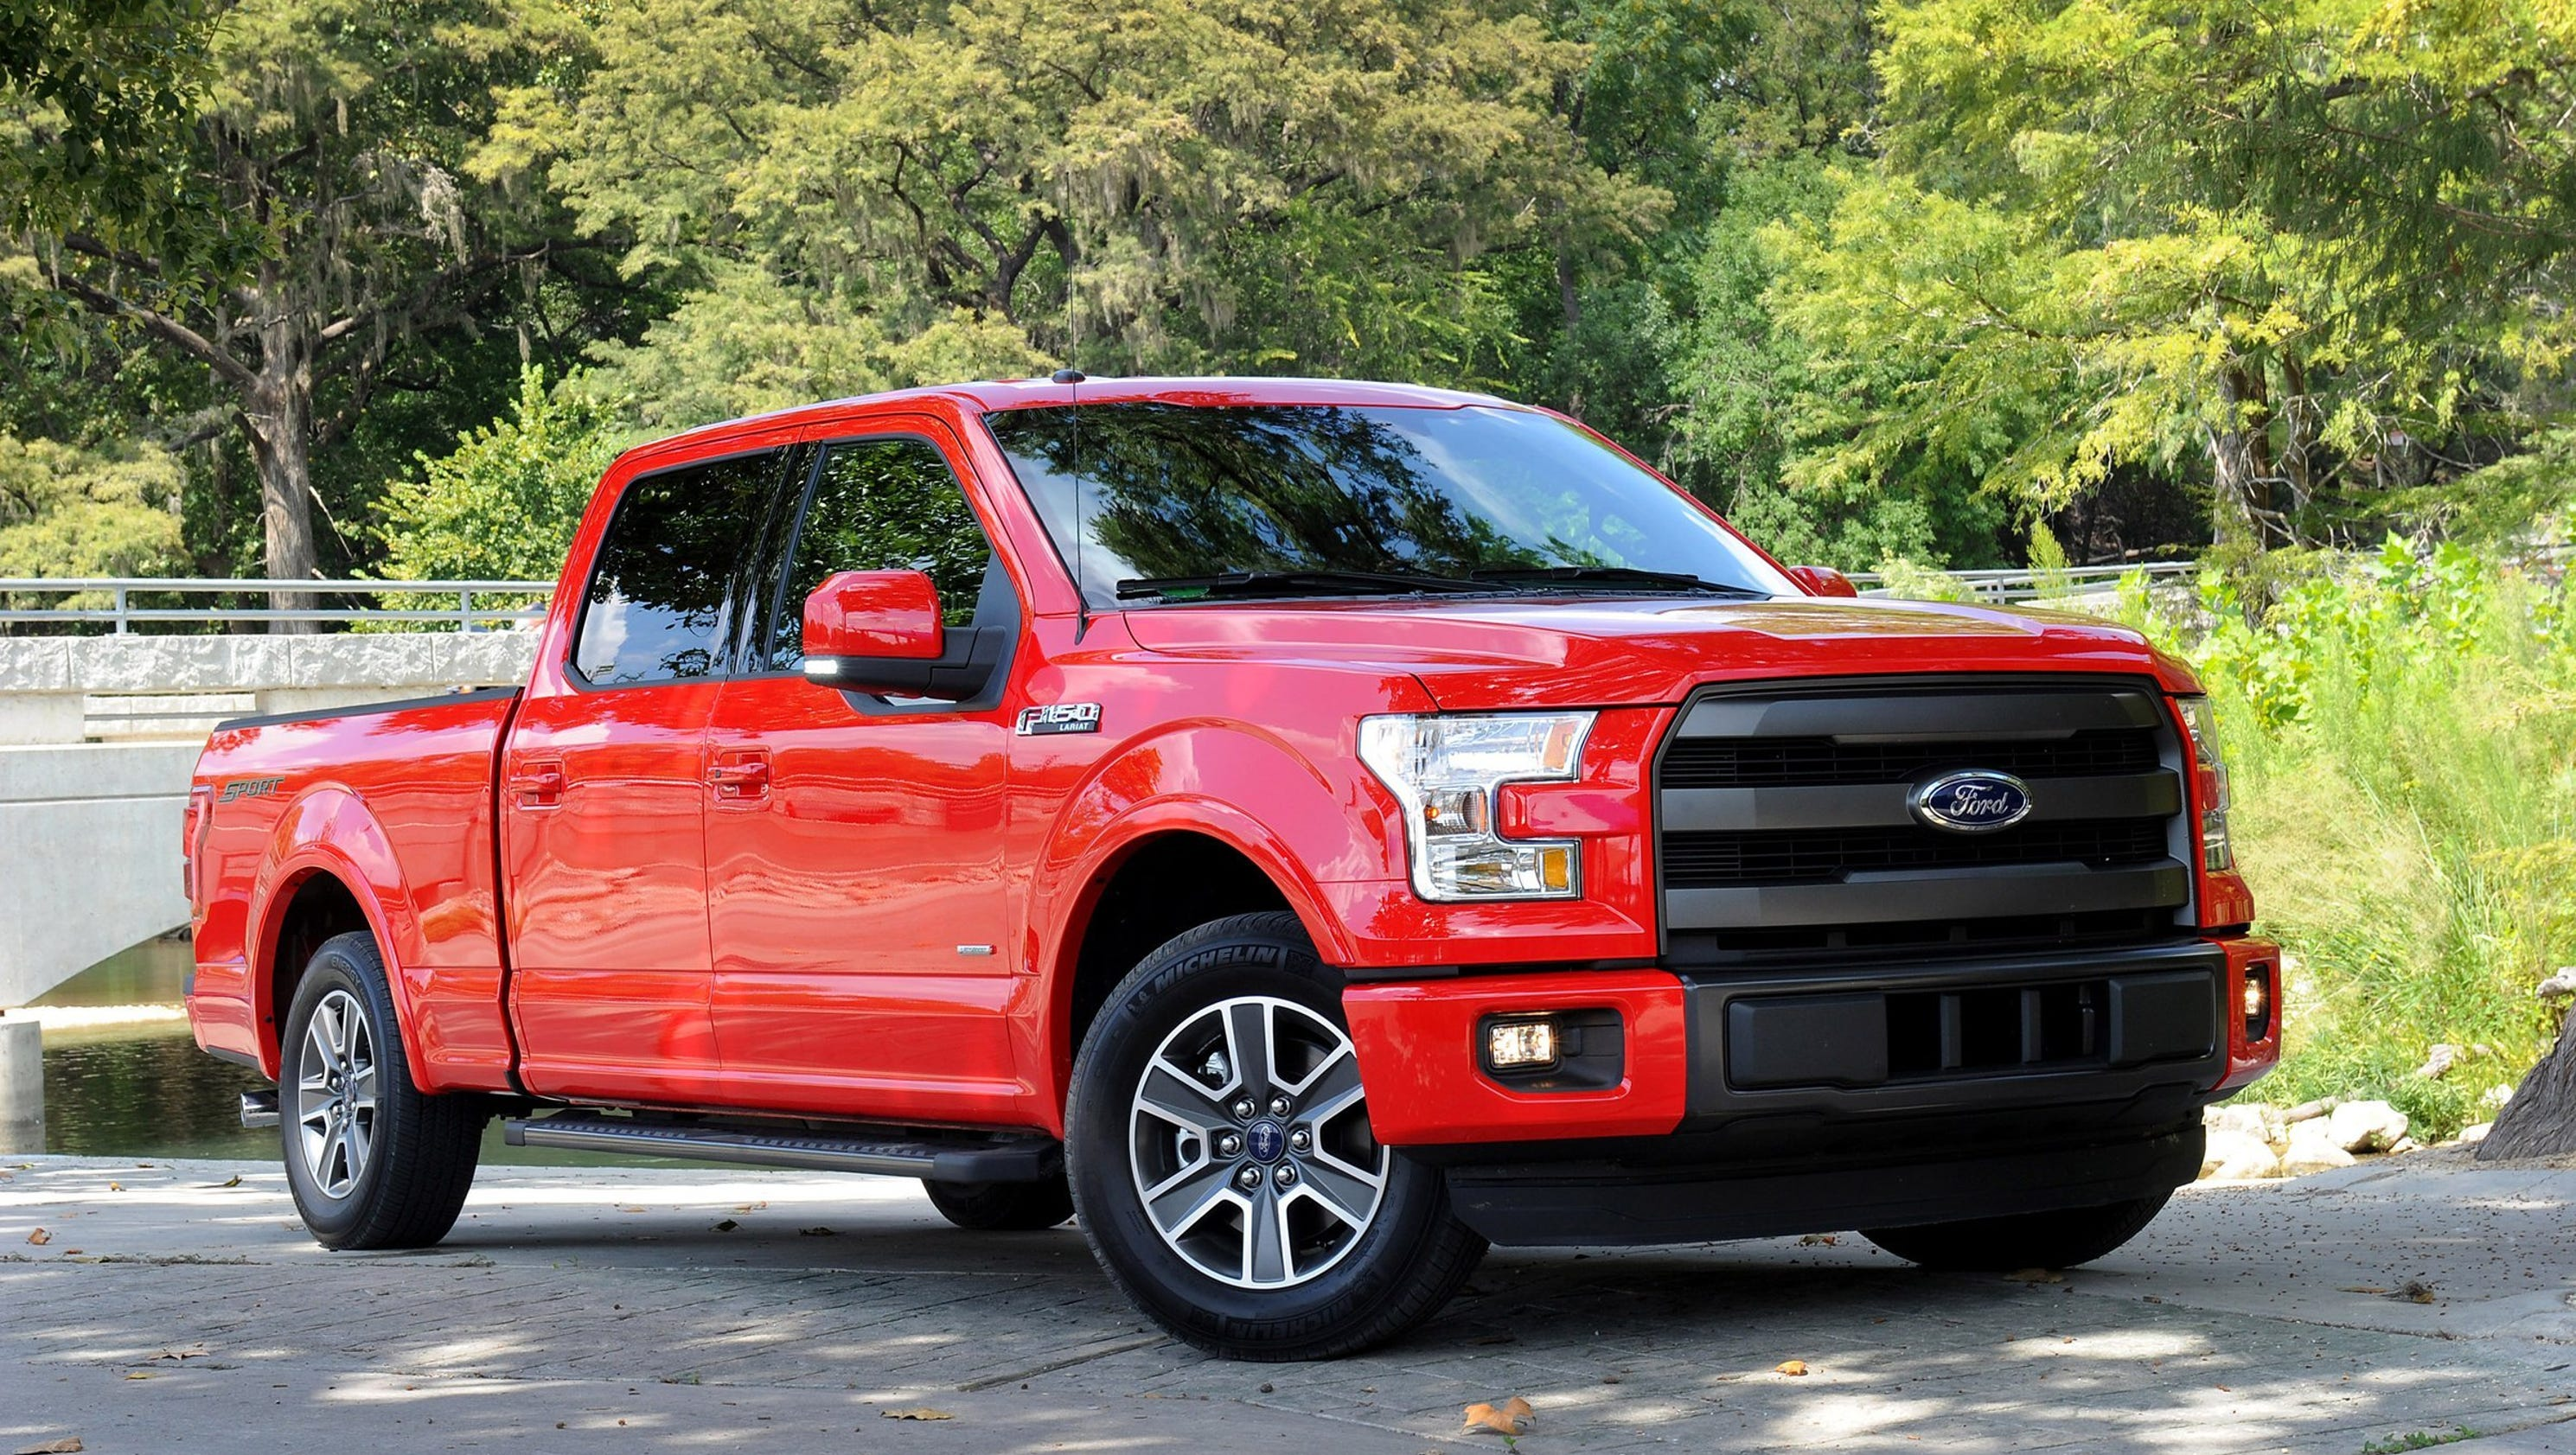 motor platinum gains muscle weight ford review loses f